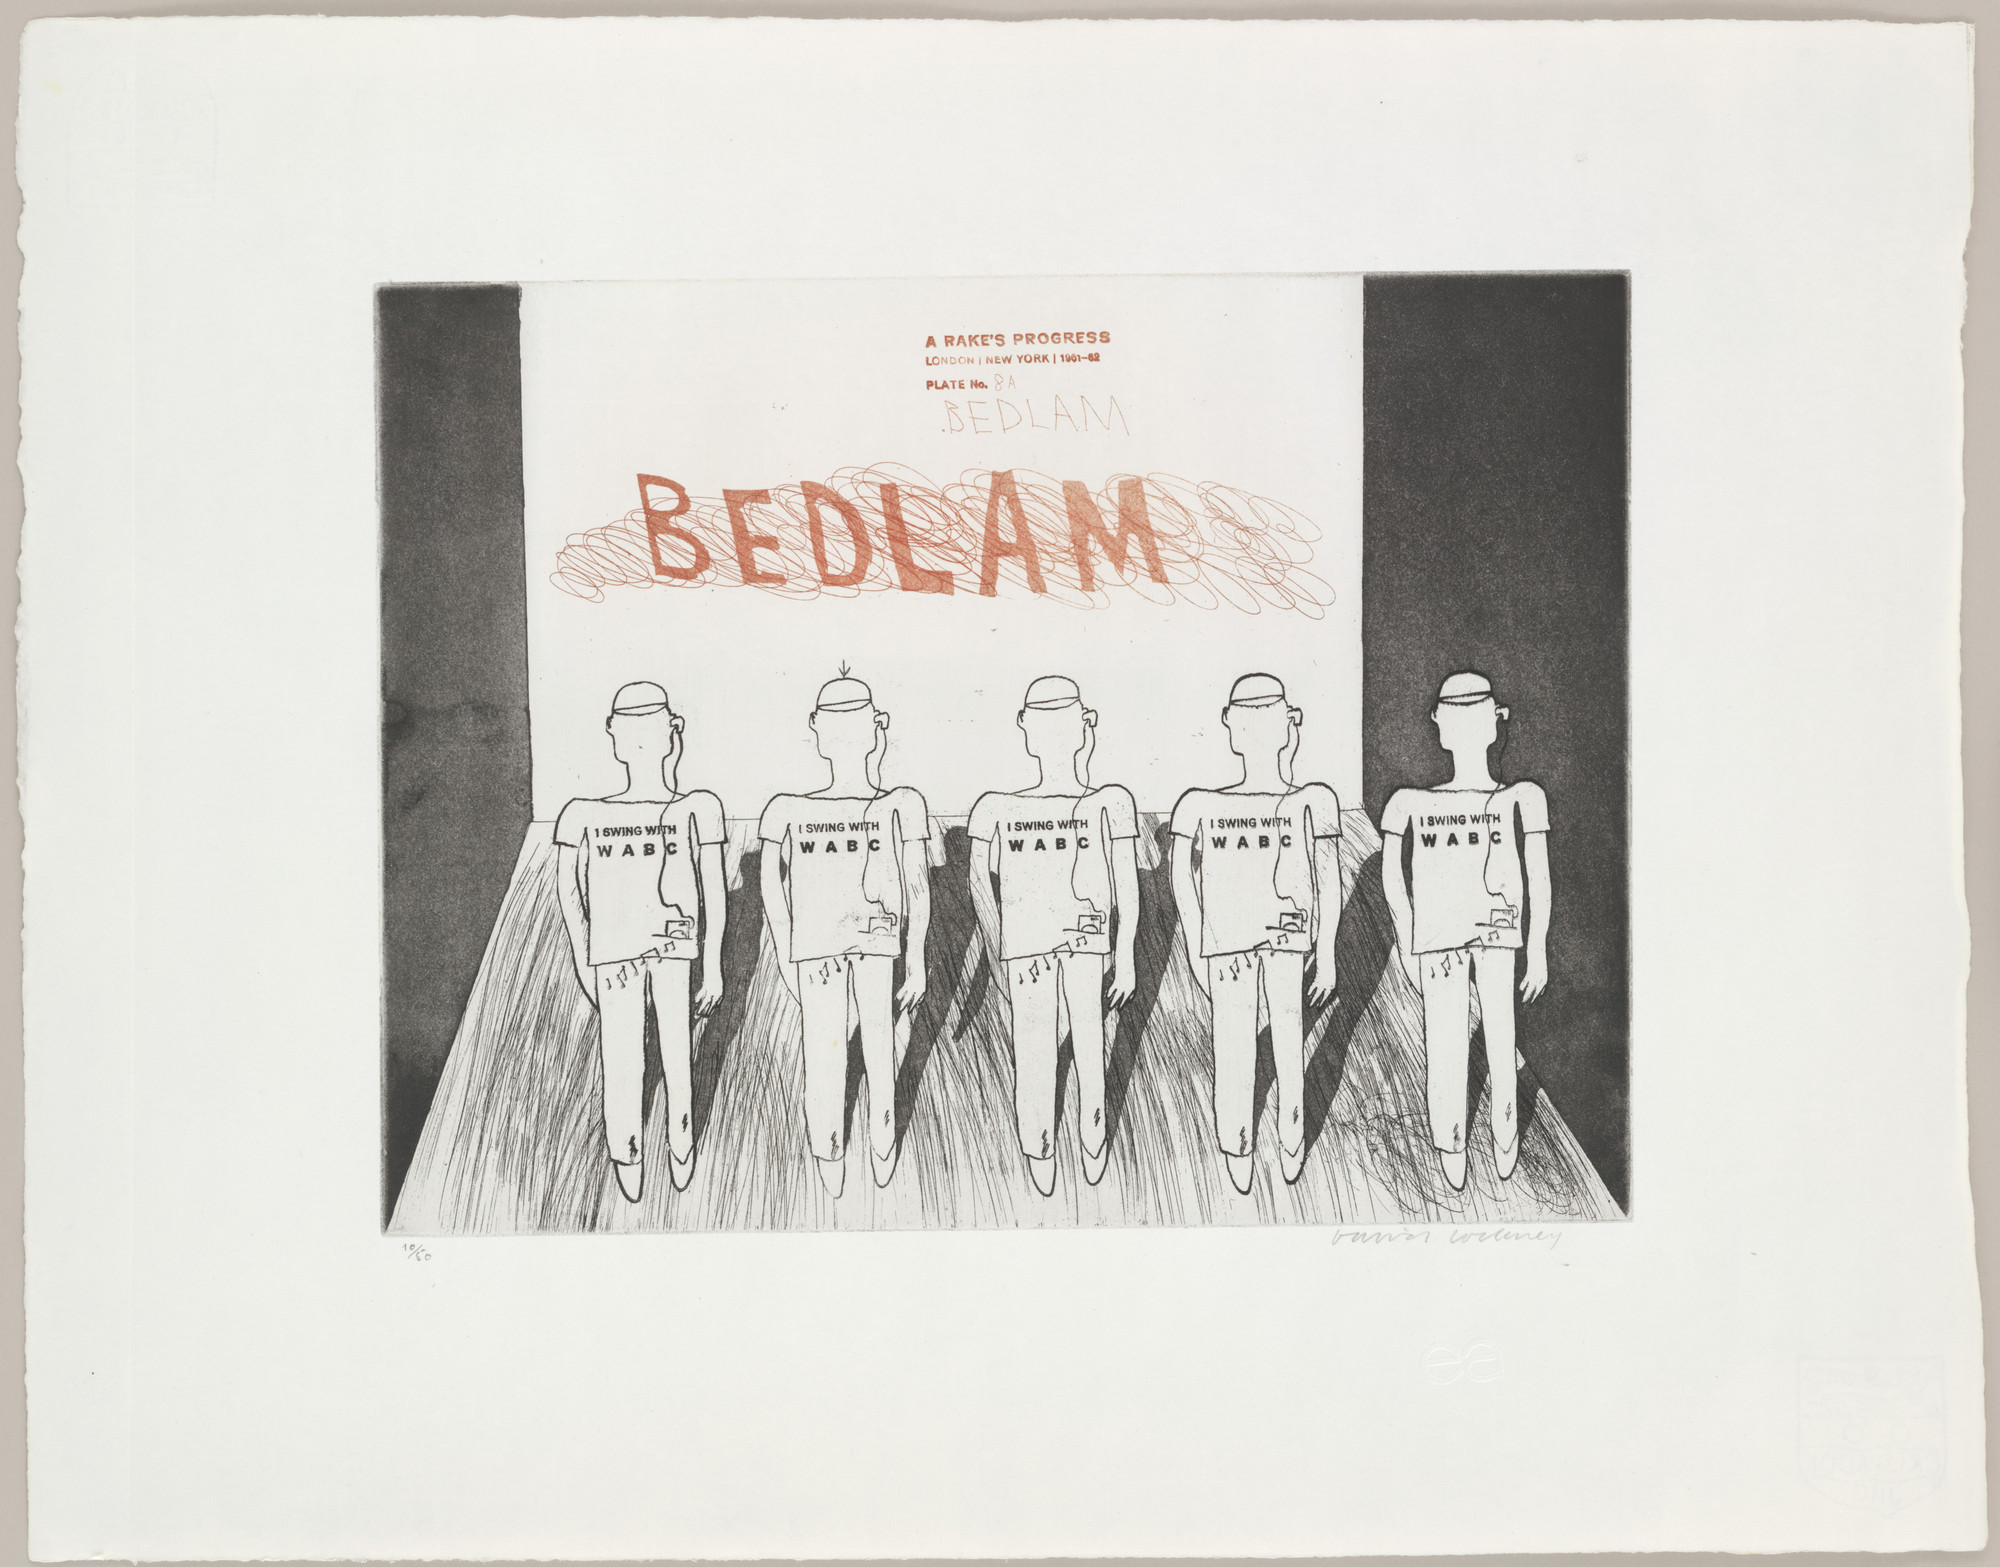 David Hockney. Bedlam (plate 8a) from A Rake's Progress. 1961–62, published 1963